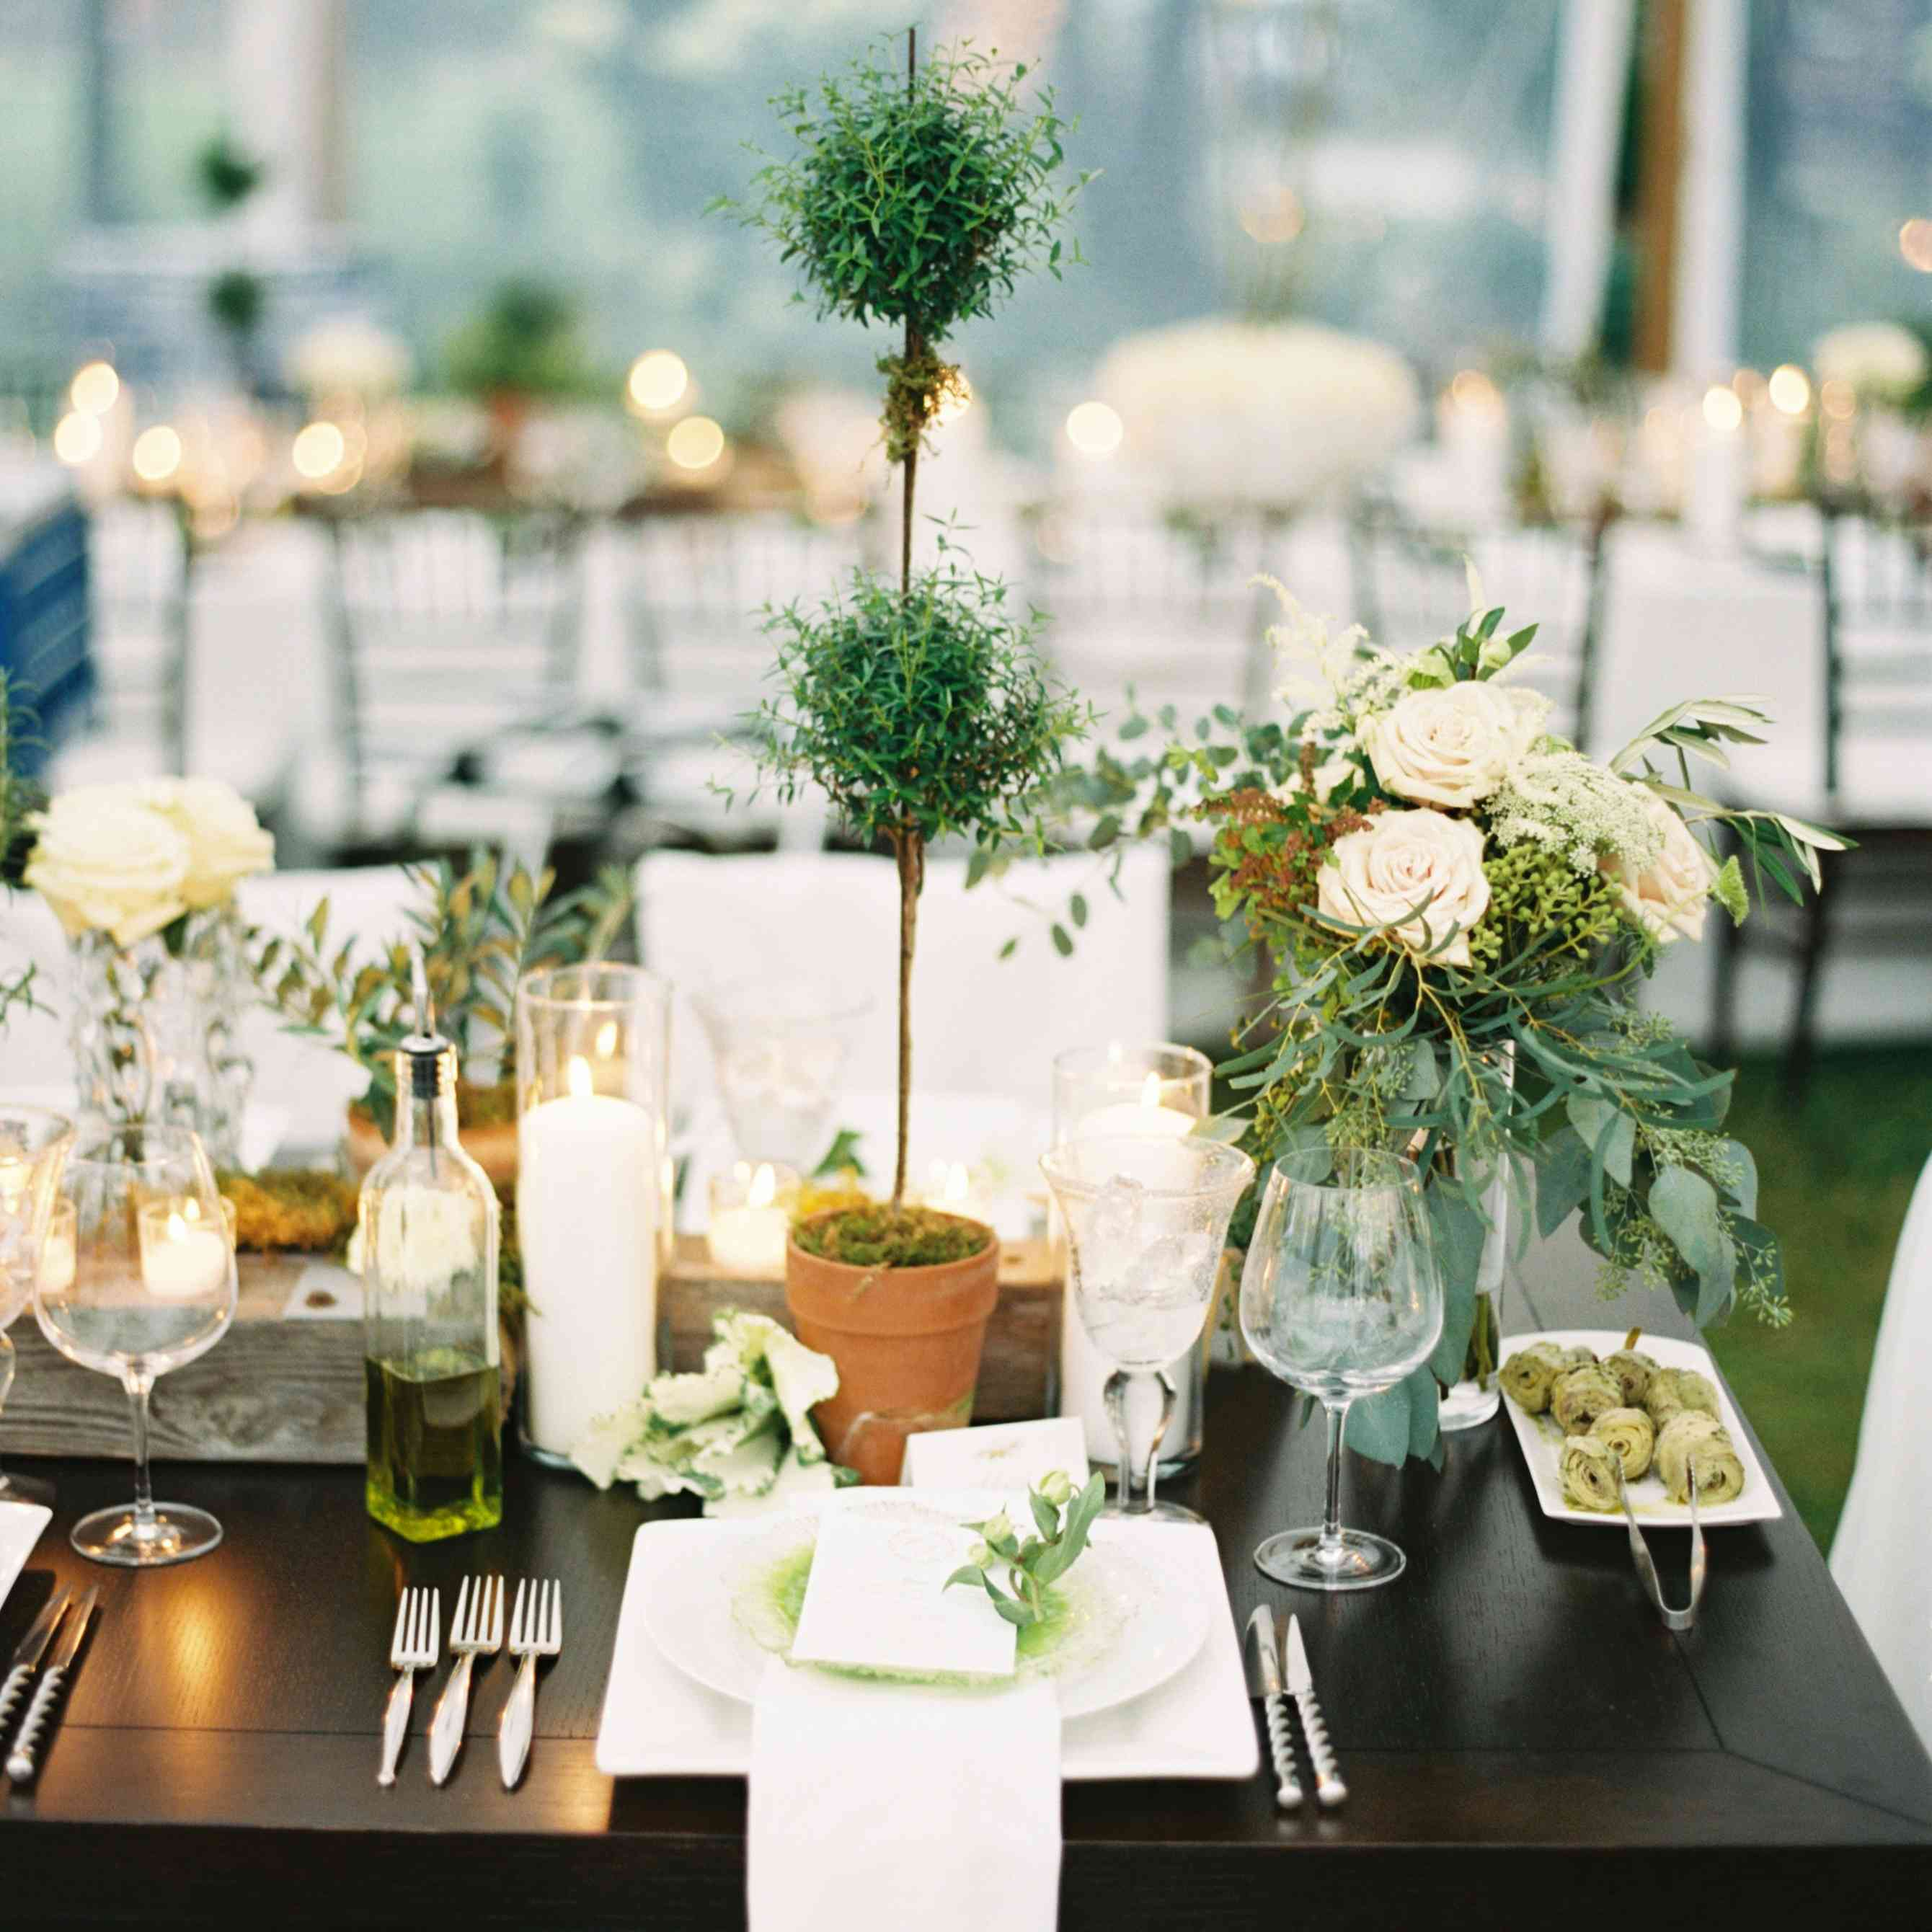 Table Setting with Topiaries